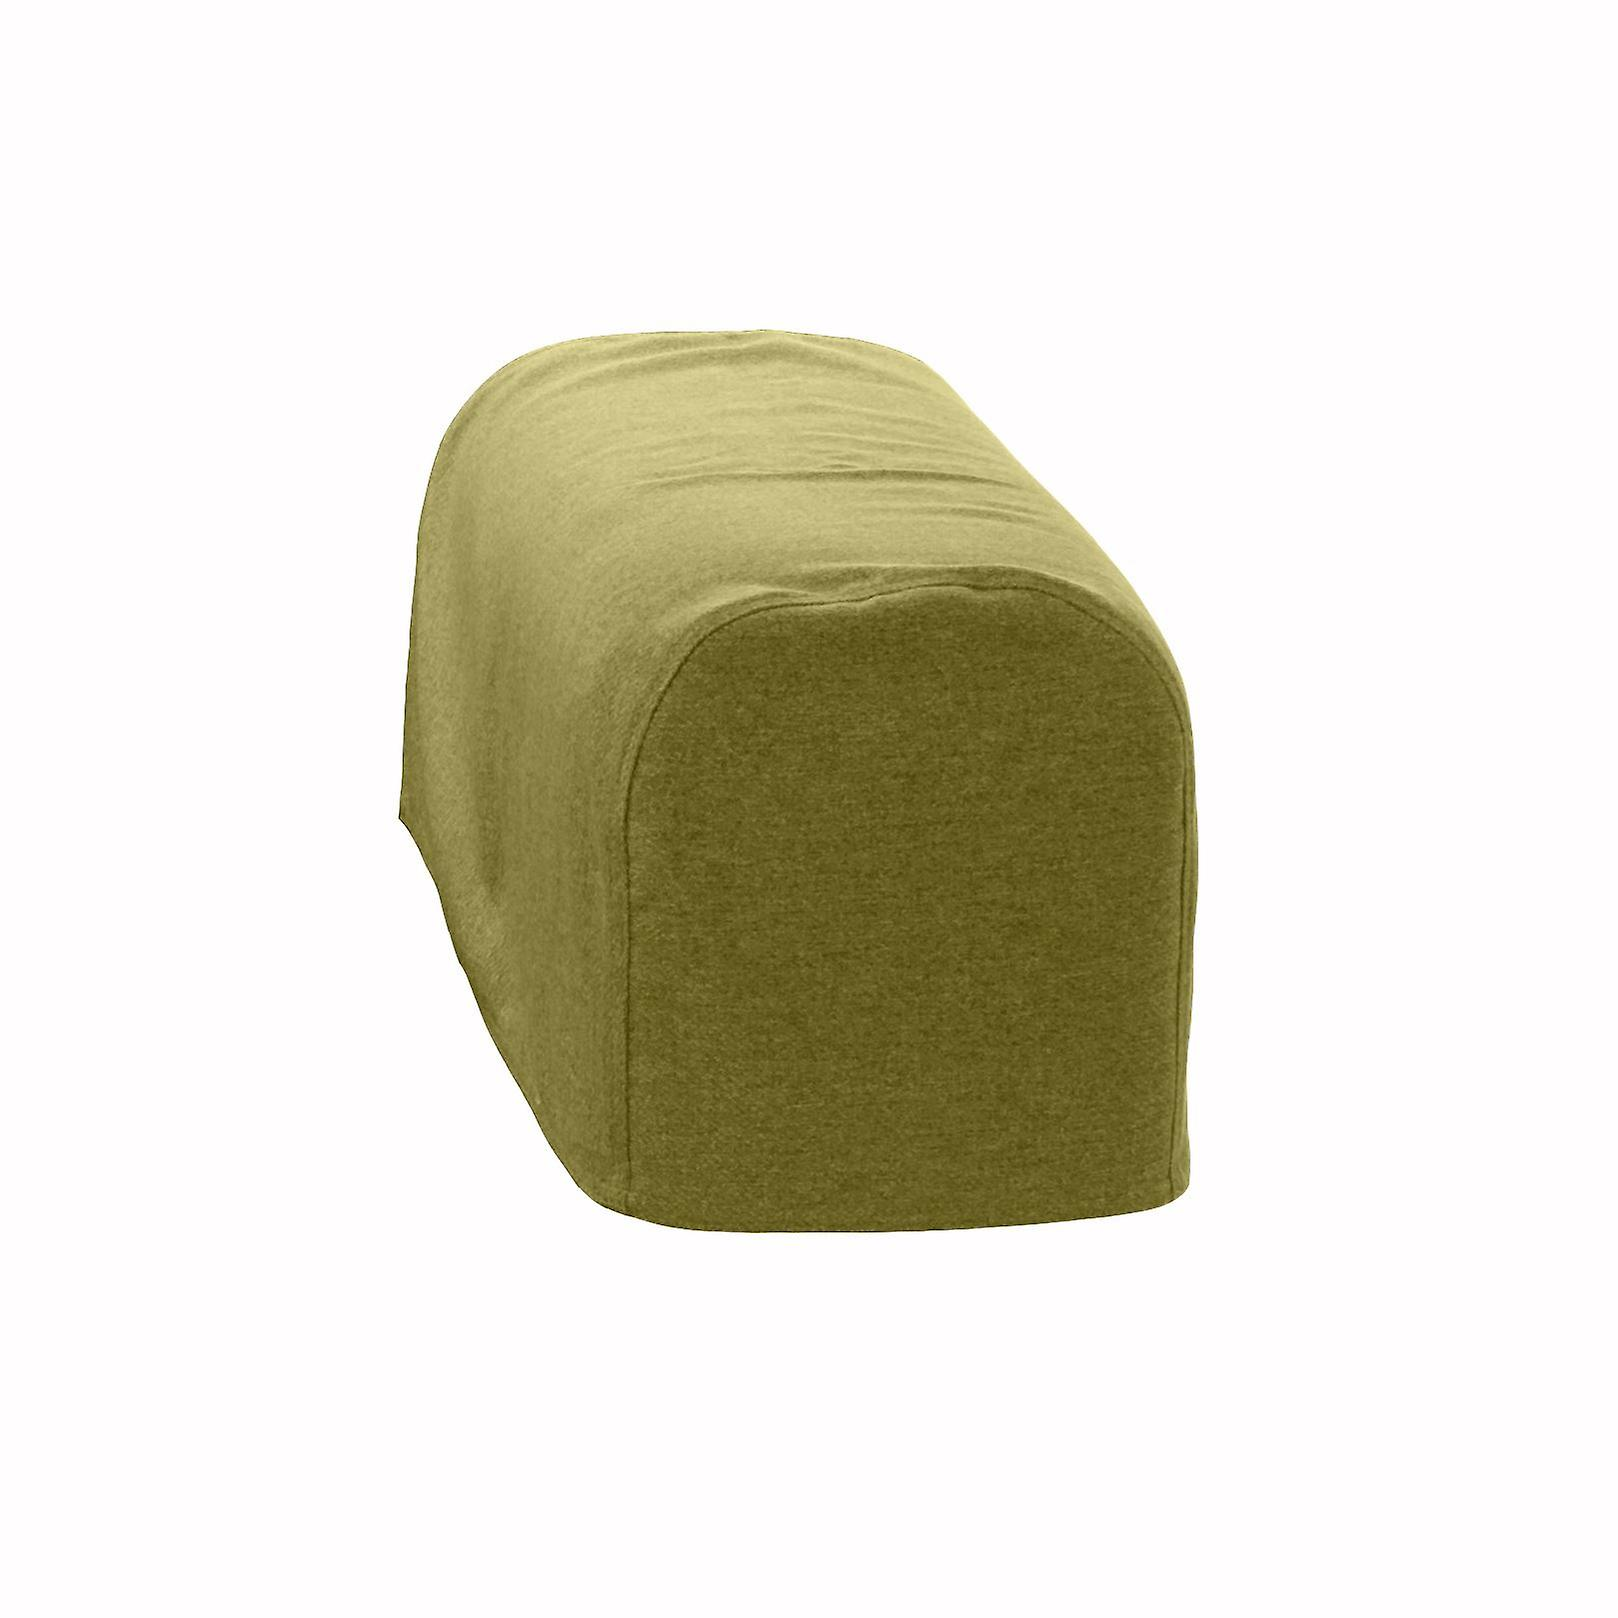 Armchair Of Size Feel Sofas® Changing For Caps Arm Large Olive Pair Sofa Wool lucTFKJ13